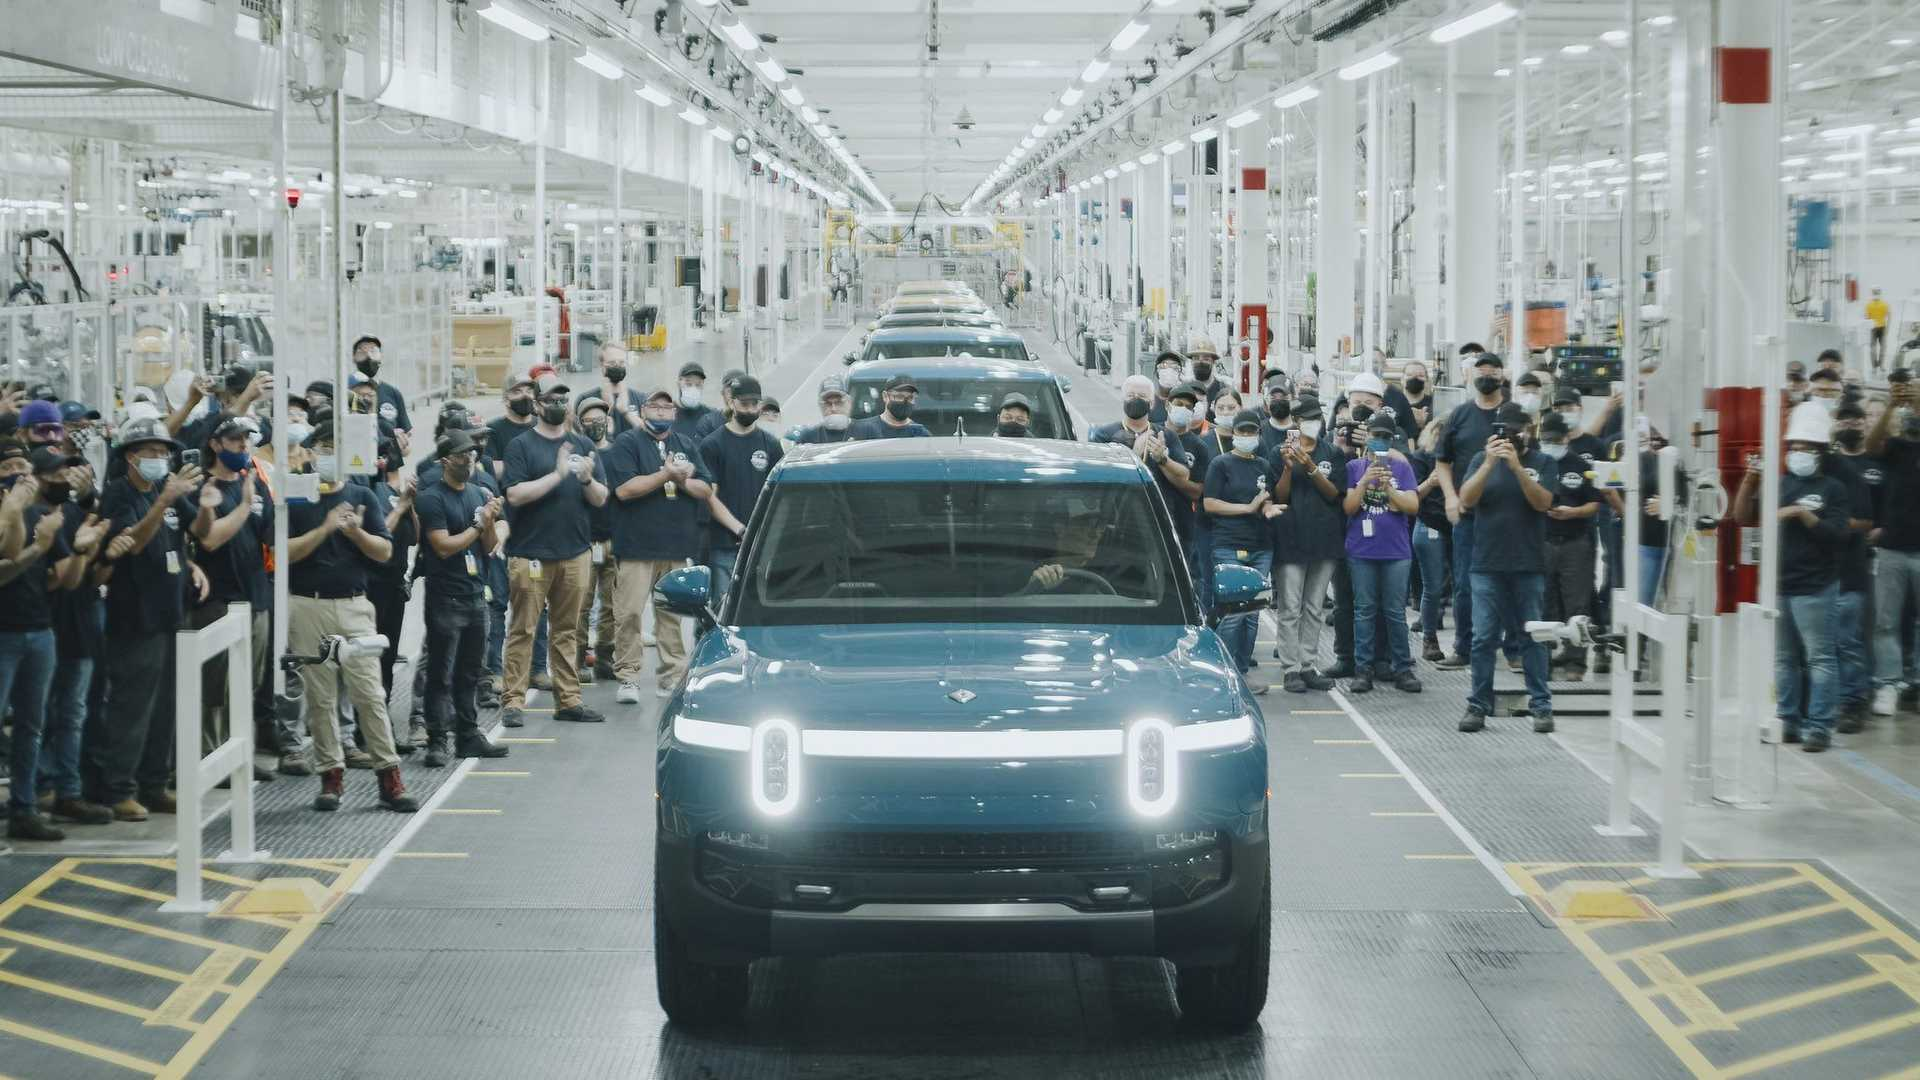 first-production-rivian-r1t-rolls-off-assembly-line-september-14-2021 (1).jpg